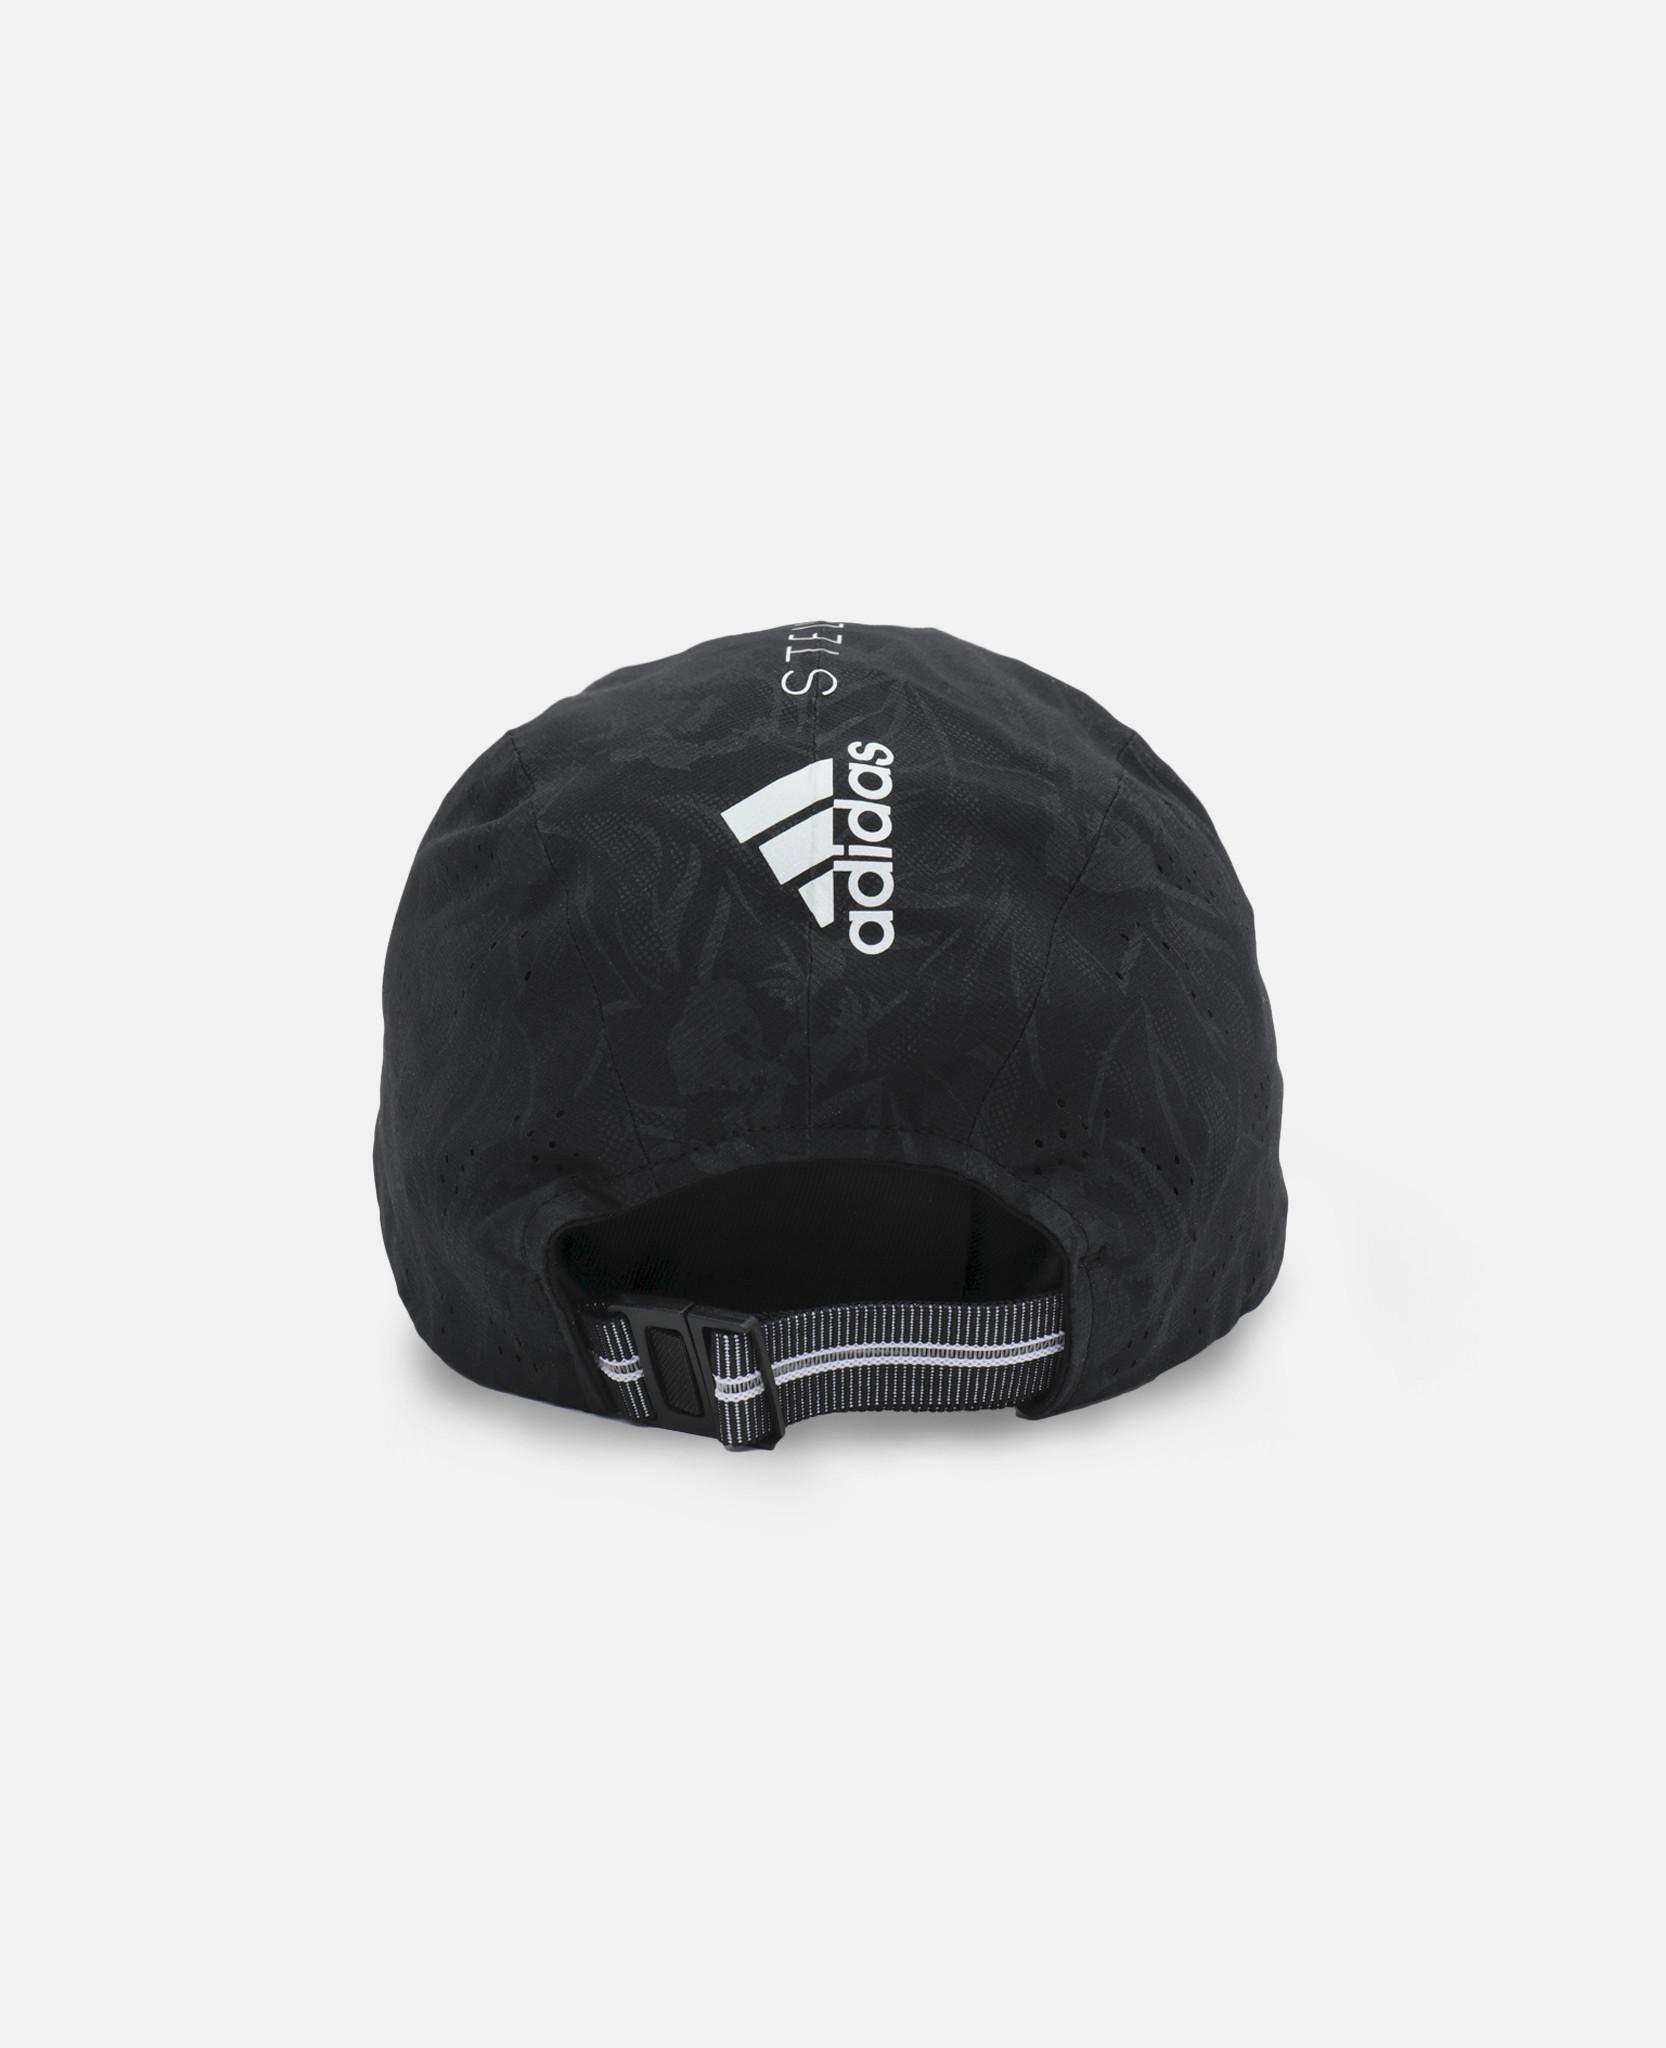 8e23cbd3a649b Lyst - adidas By Stella McCartney Black Running Cap in Black